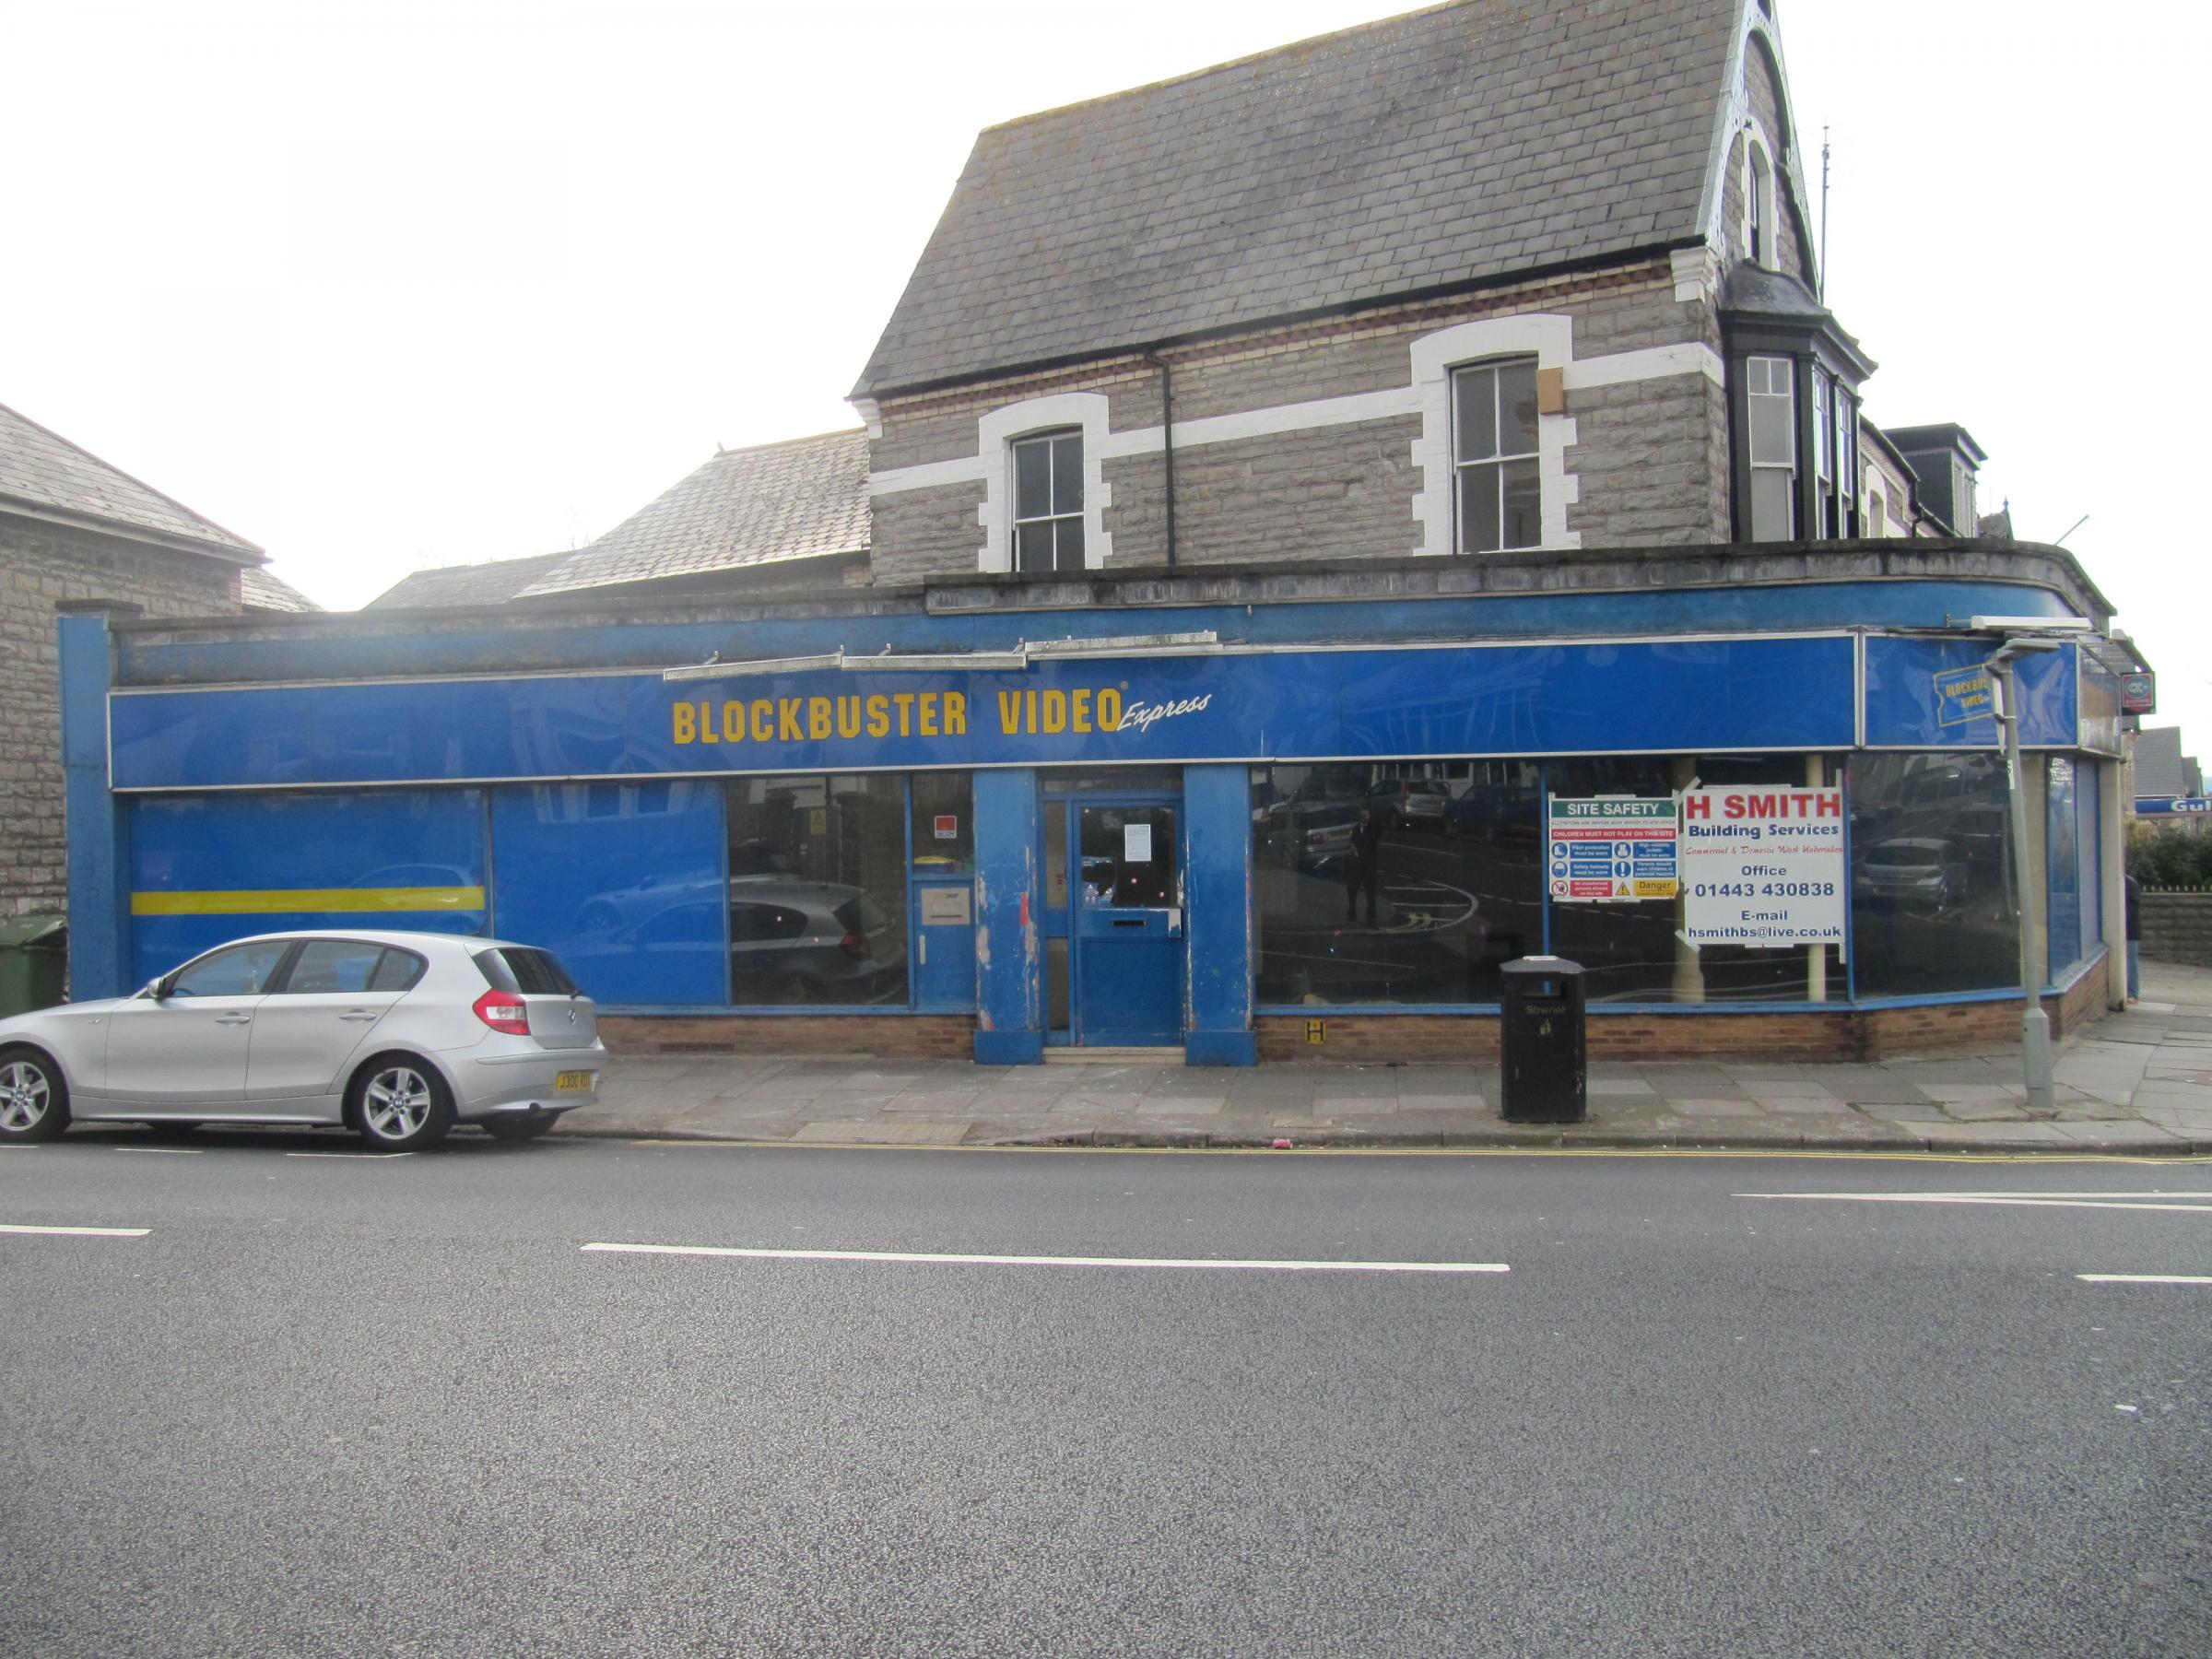 Residents' anger as pizza takeaway moves to Penarth